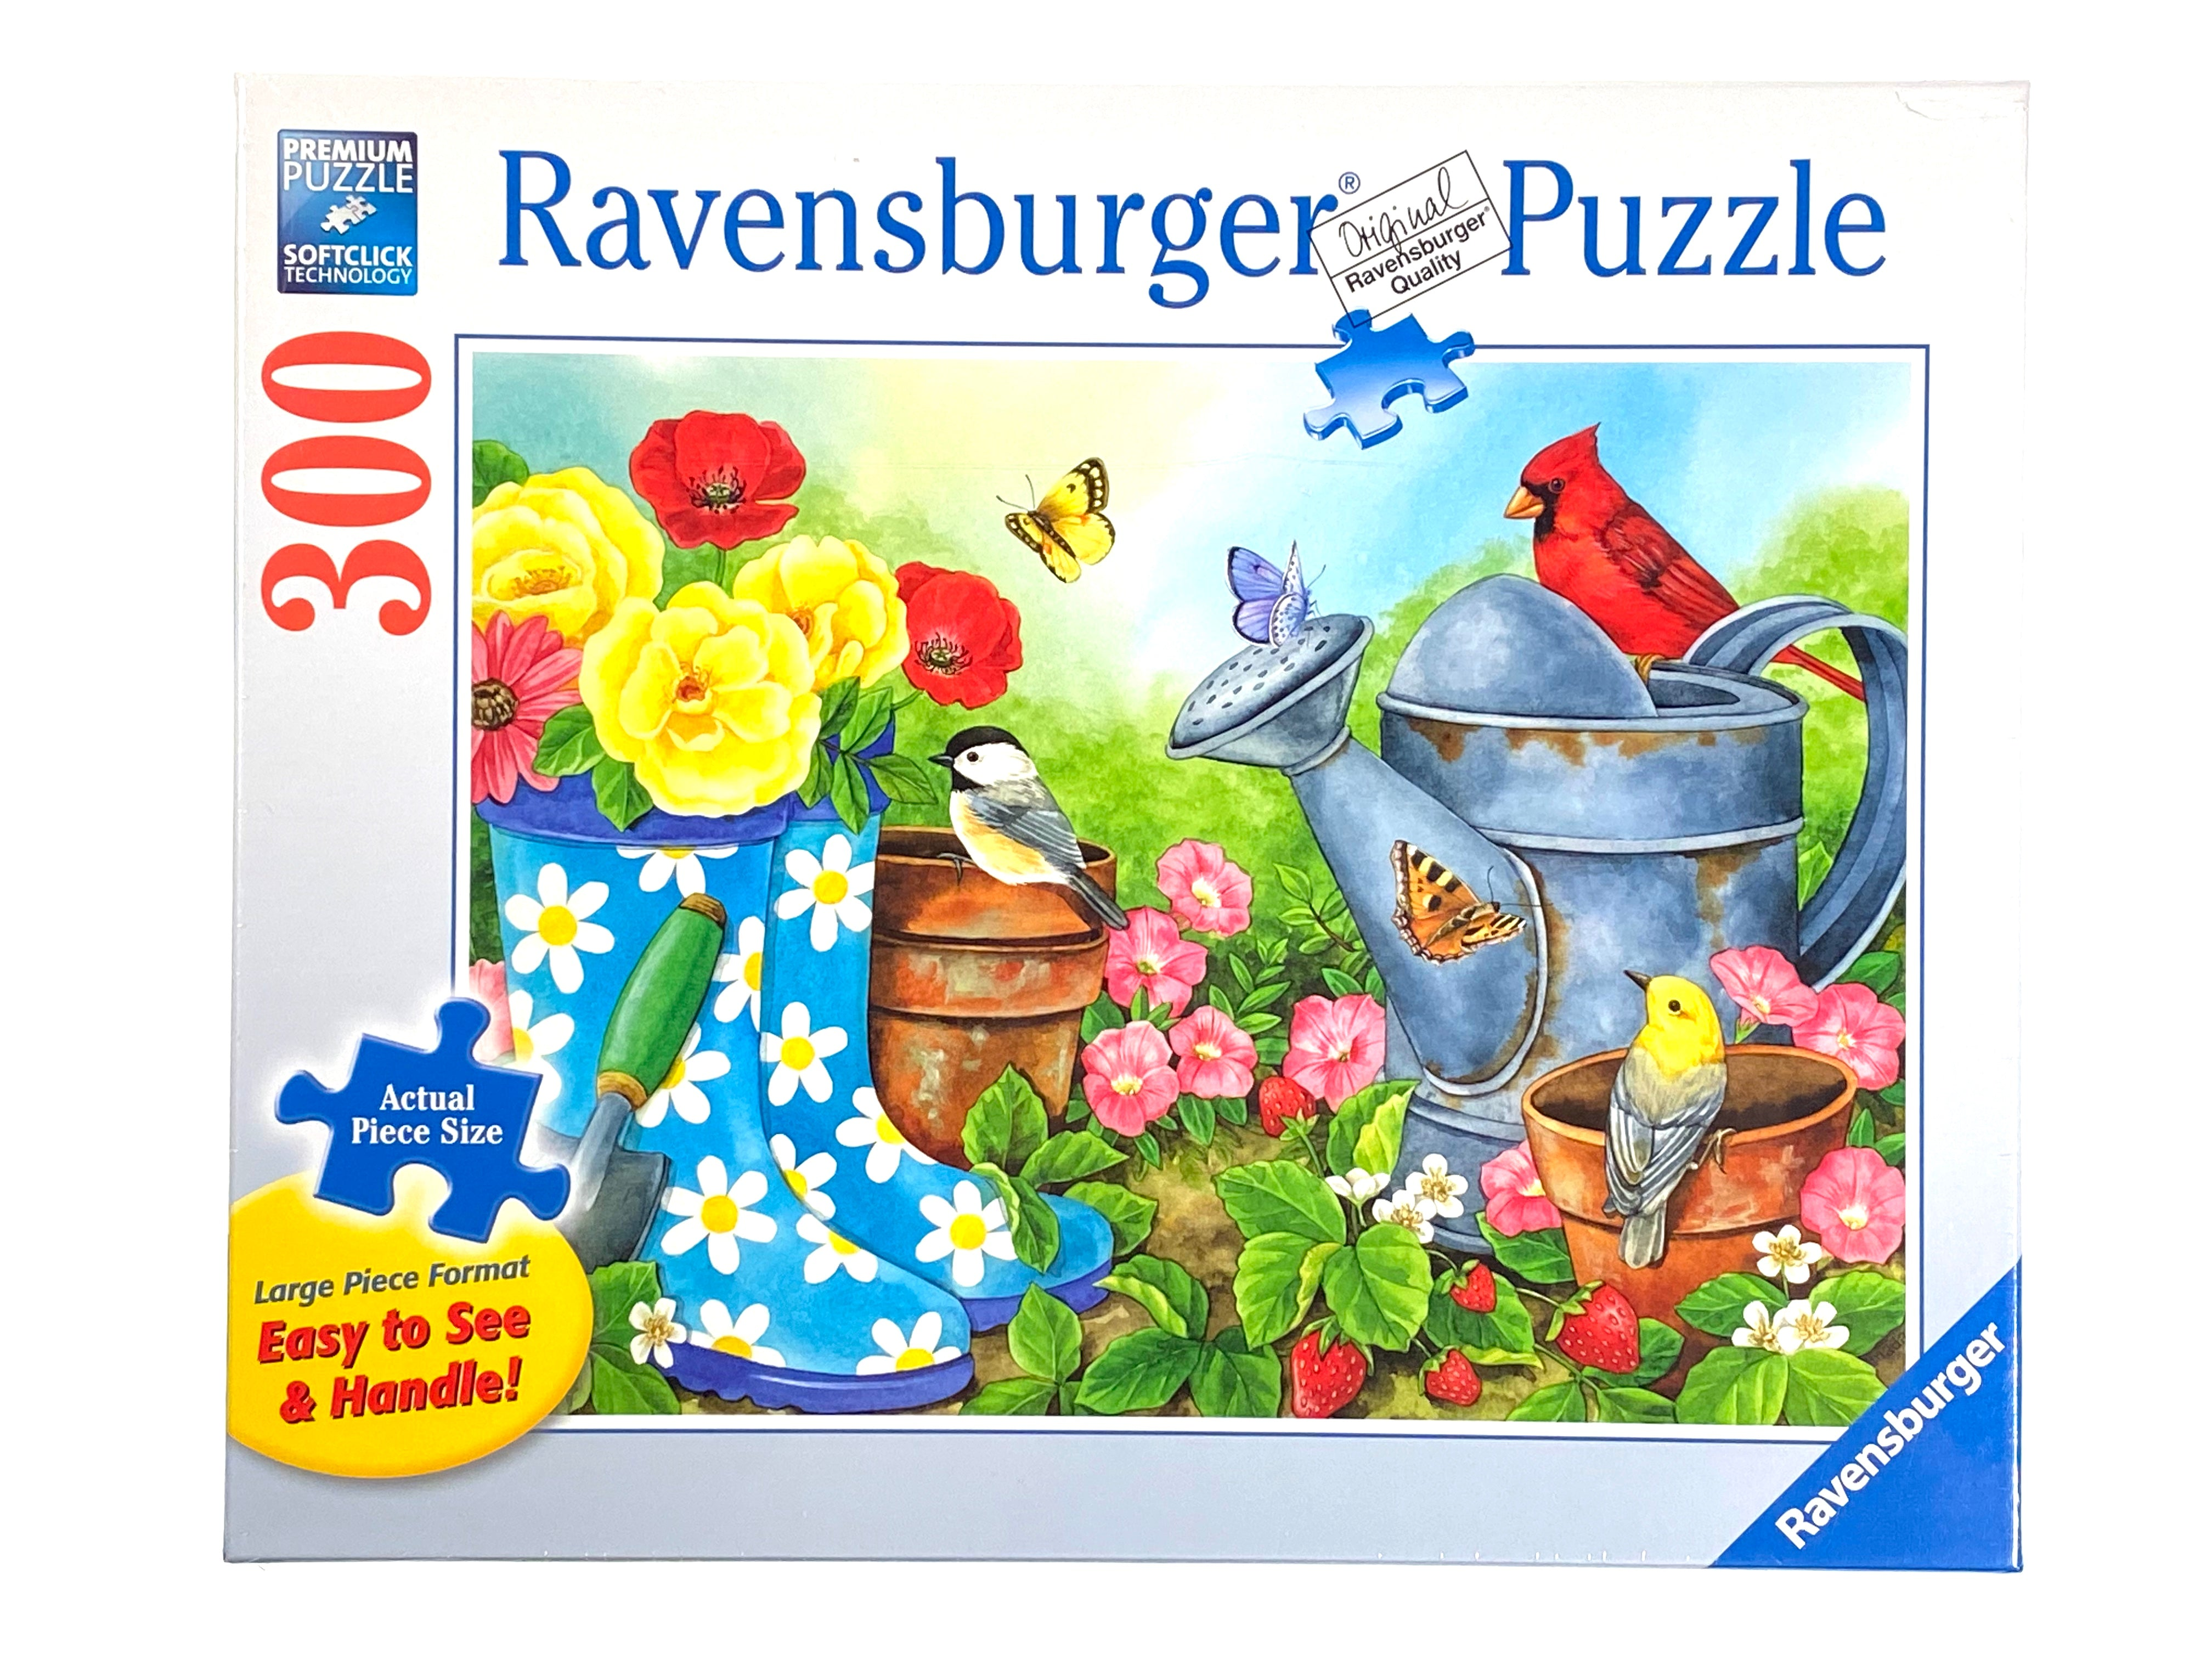 Garden Traditions large format 300 piece puzzle